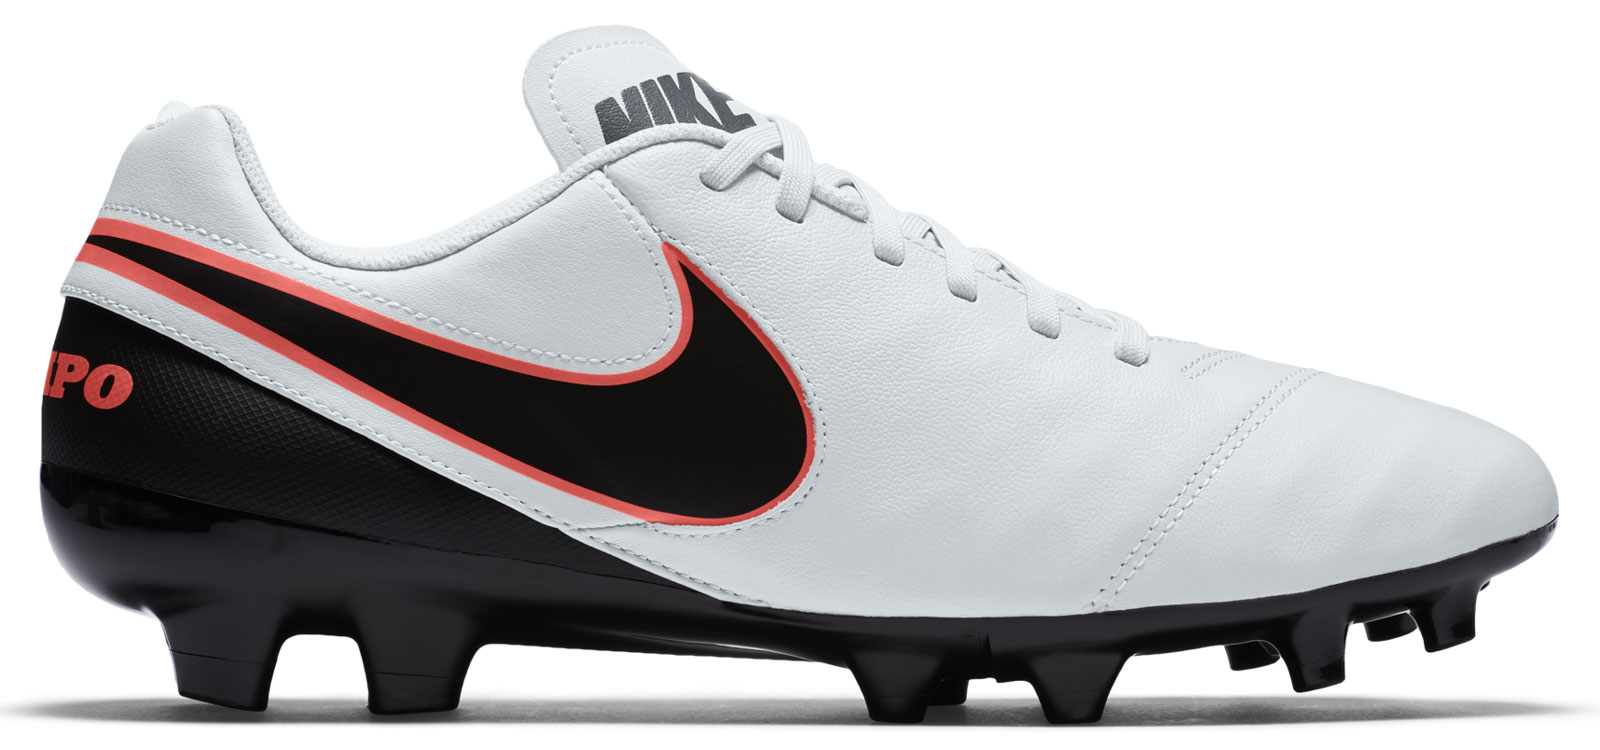 Nike Tiempo 2016 Boot Comparison - Legend v Legacy v ...